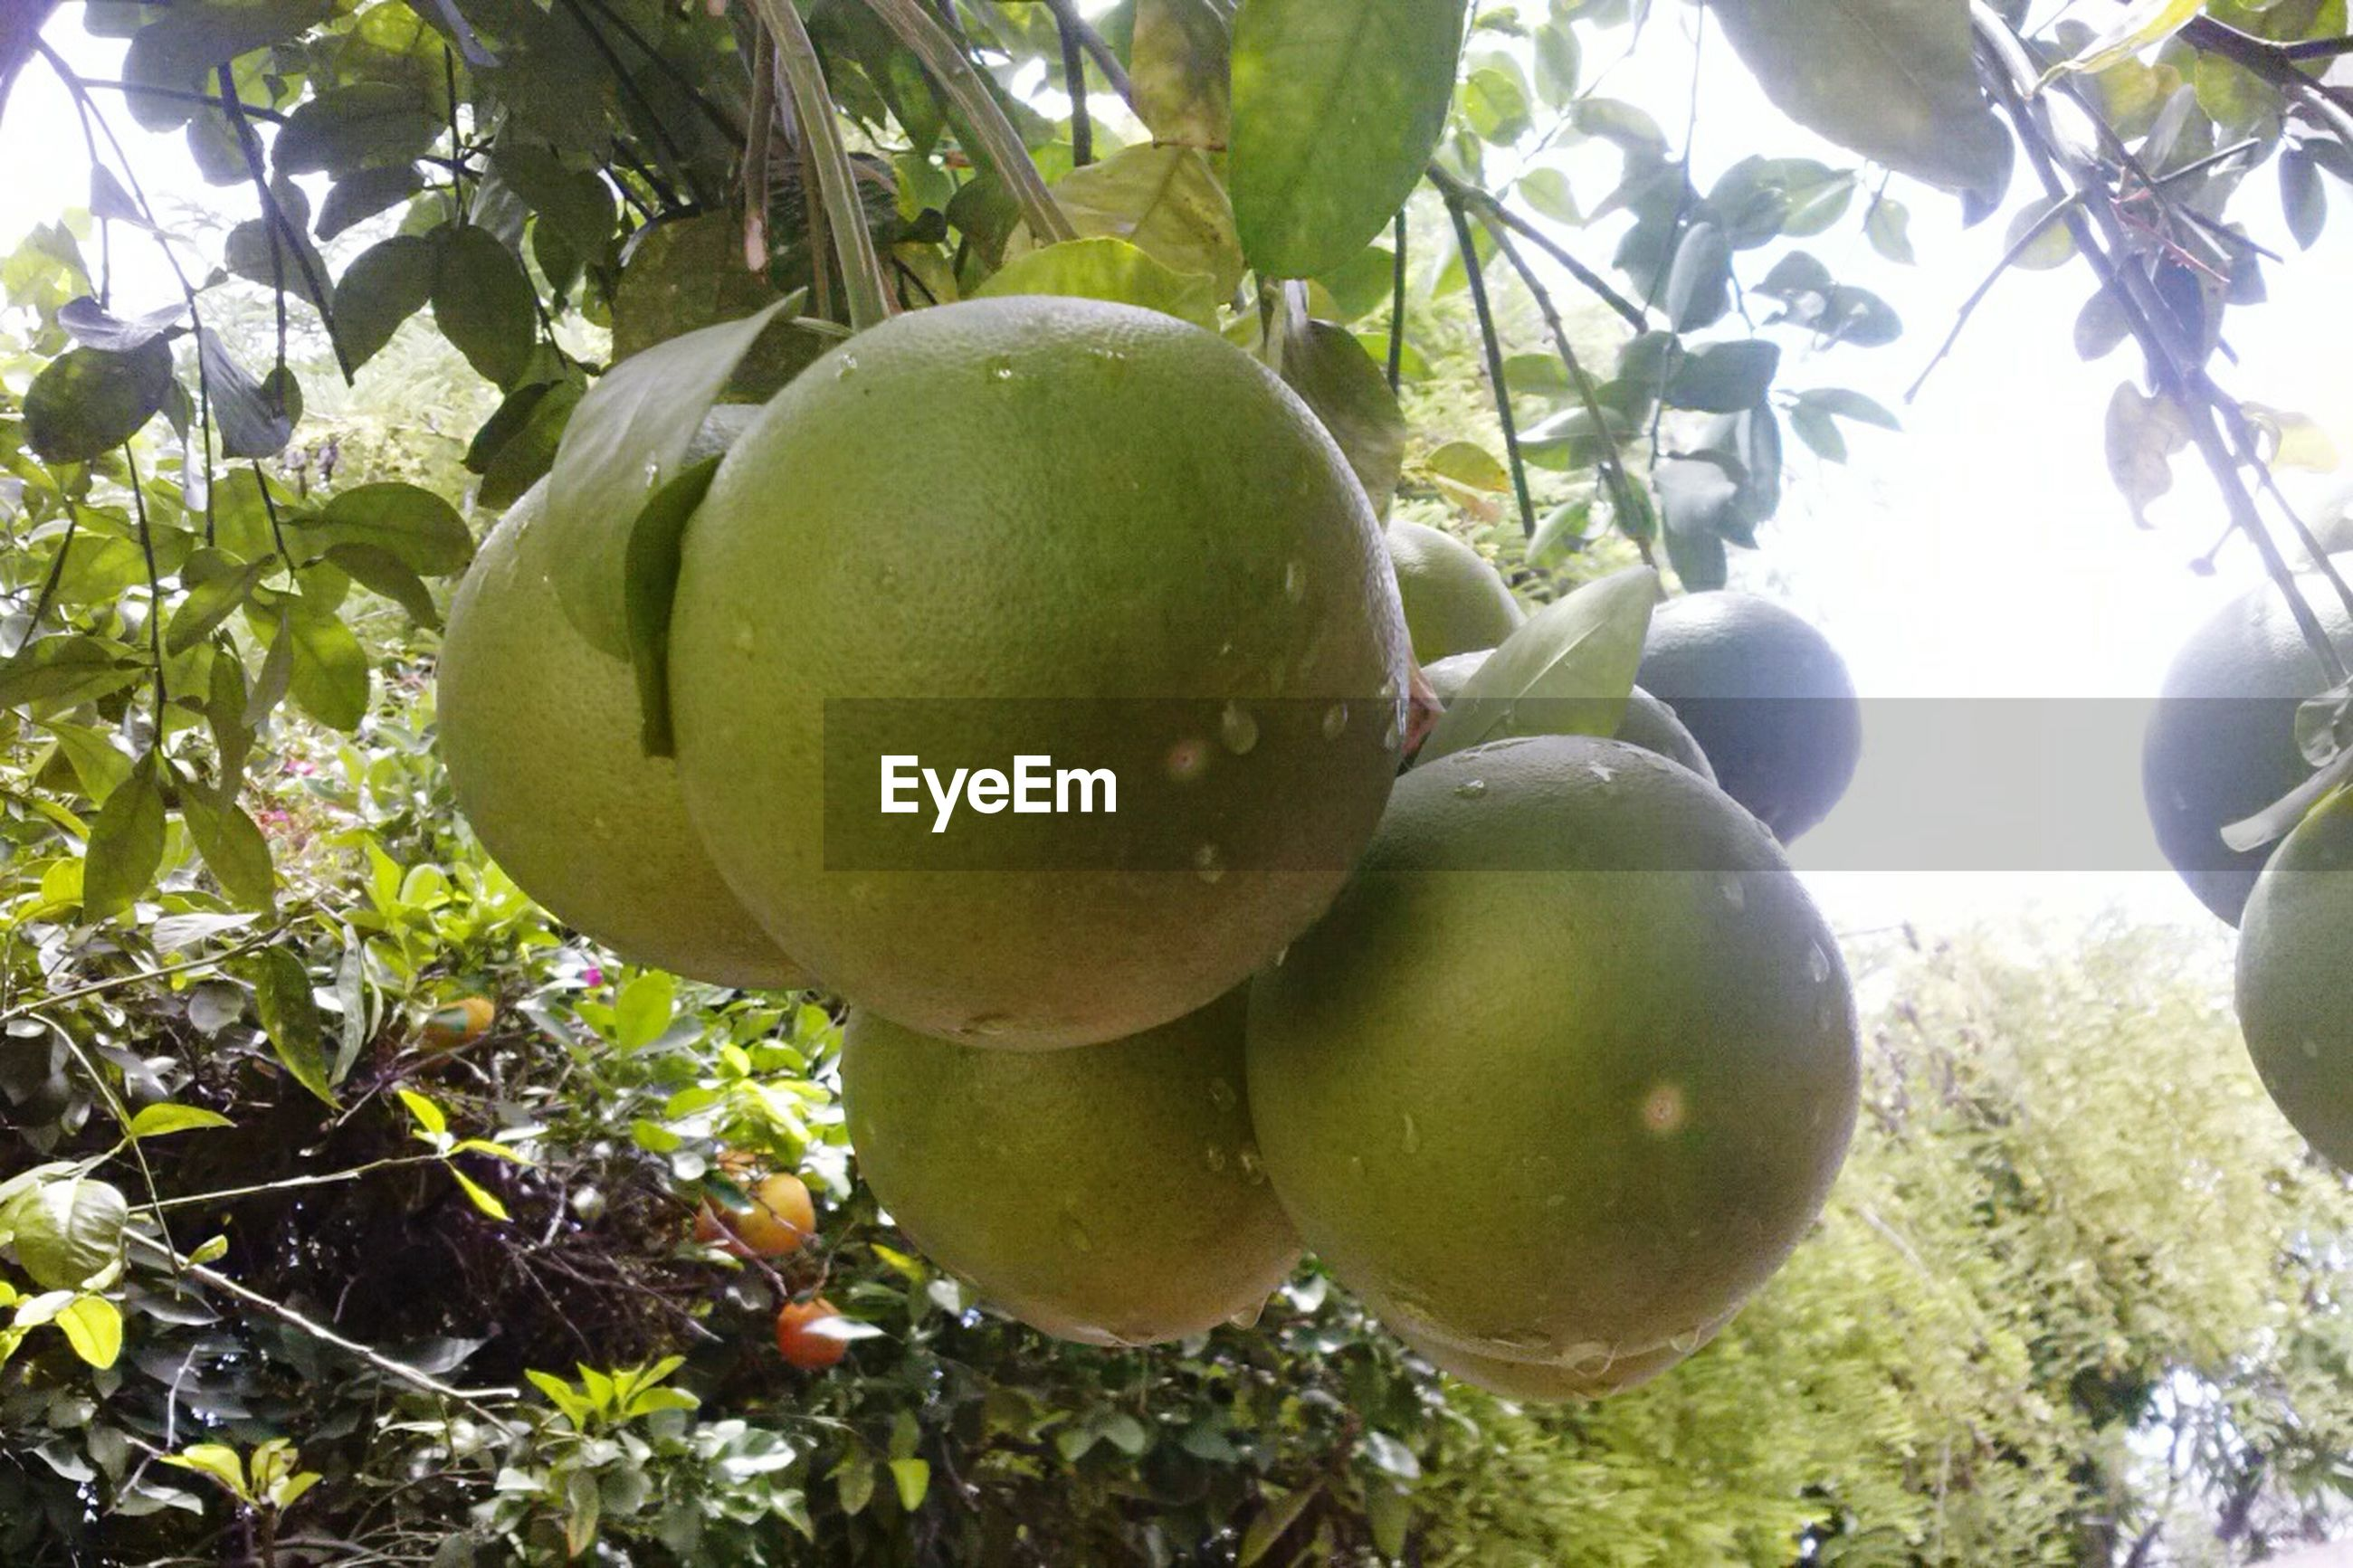 fruit, food and drink, tree, healthy eating, green color, food, growth, freshness, leaf, close-up, branch, hanging, low angle view, nature, ripe, agriculture, growing, apple - fruit, day, apple